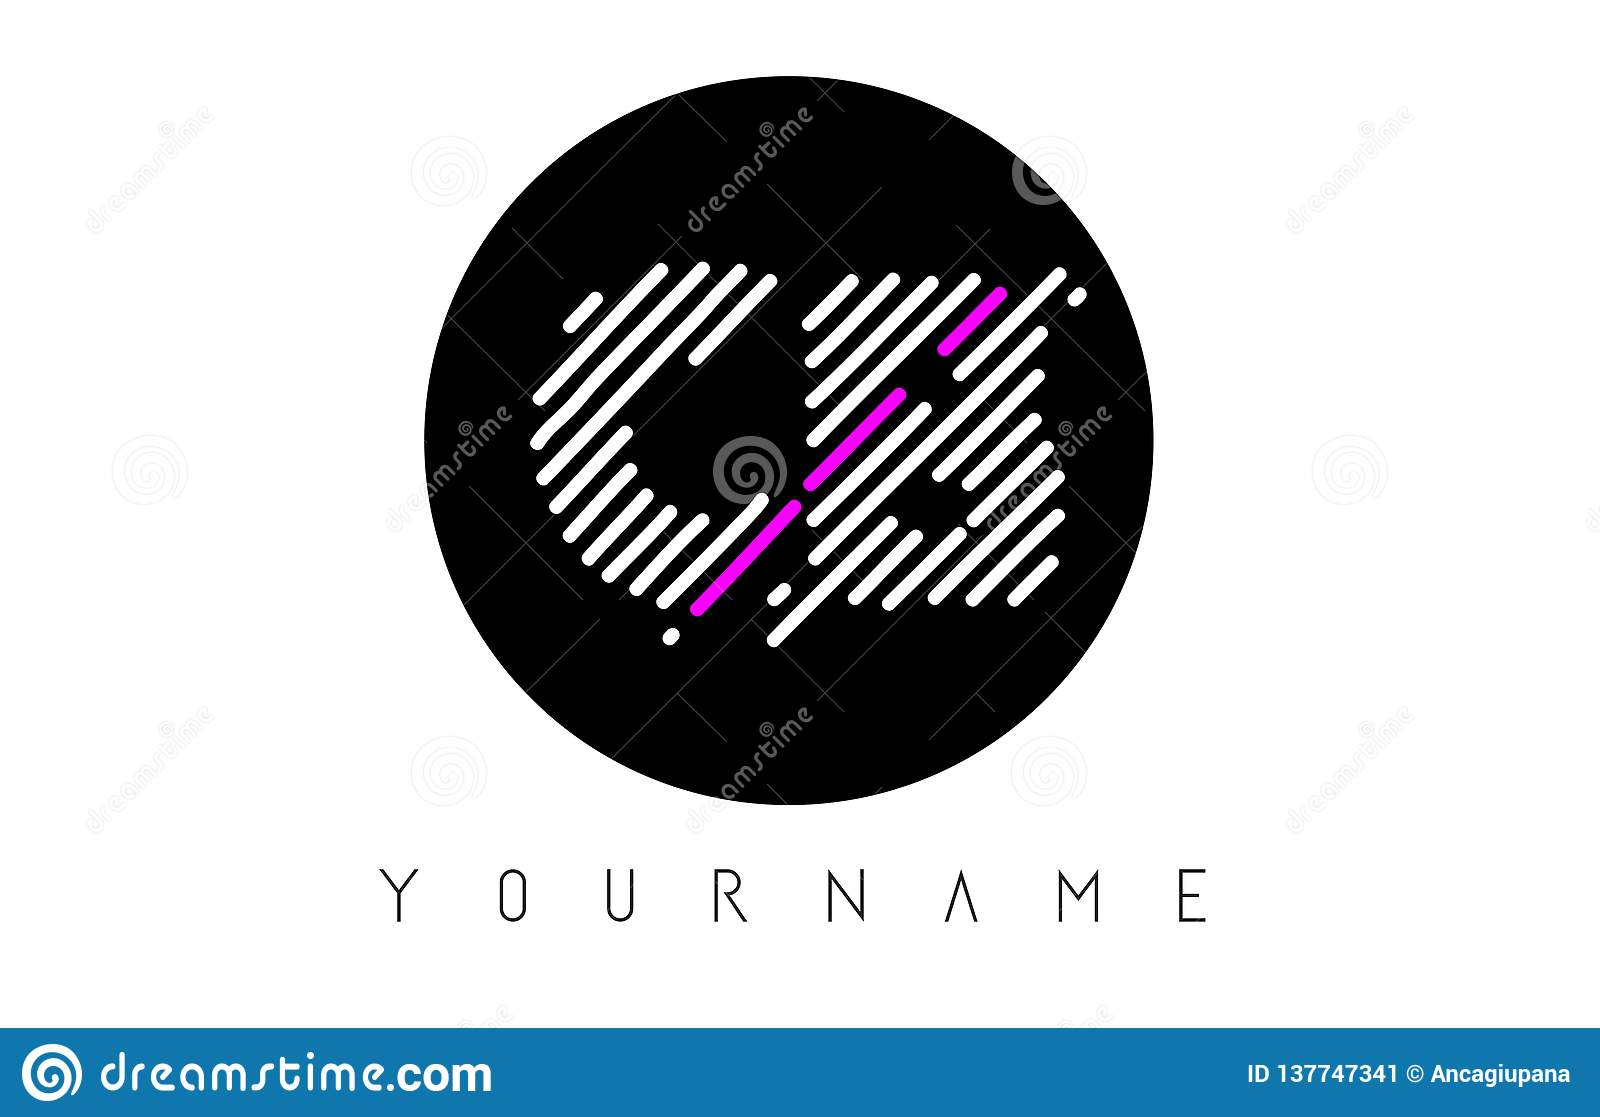 CB Letter Logo Design With White Lines And Black Circle